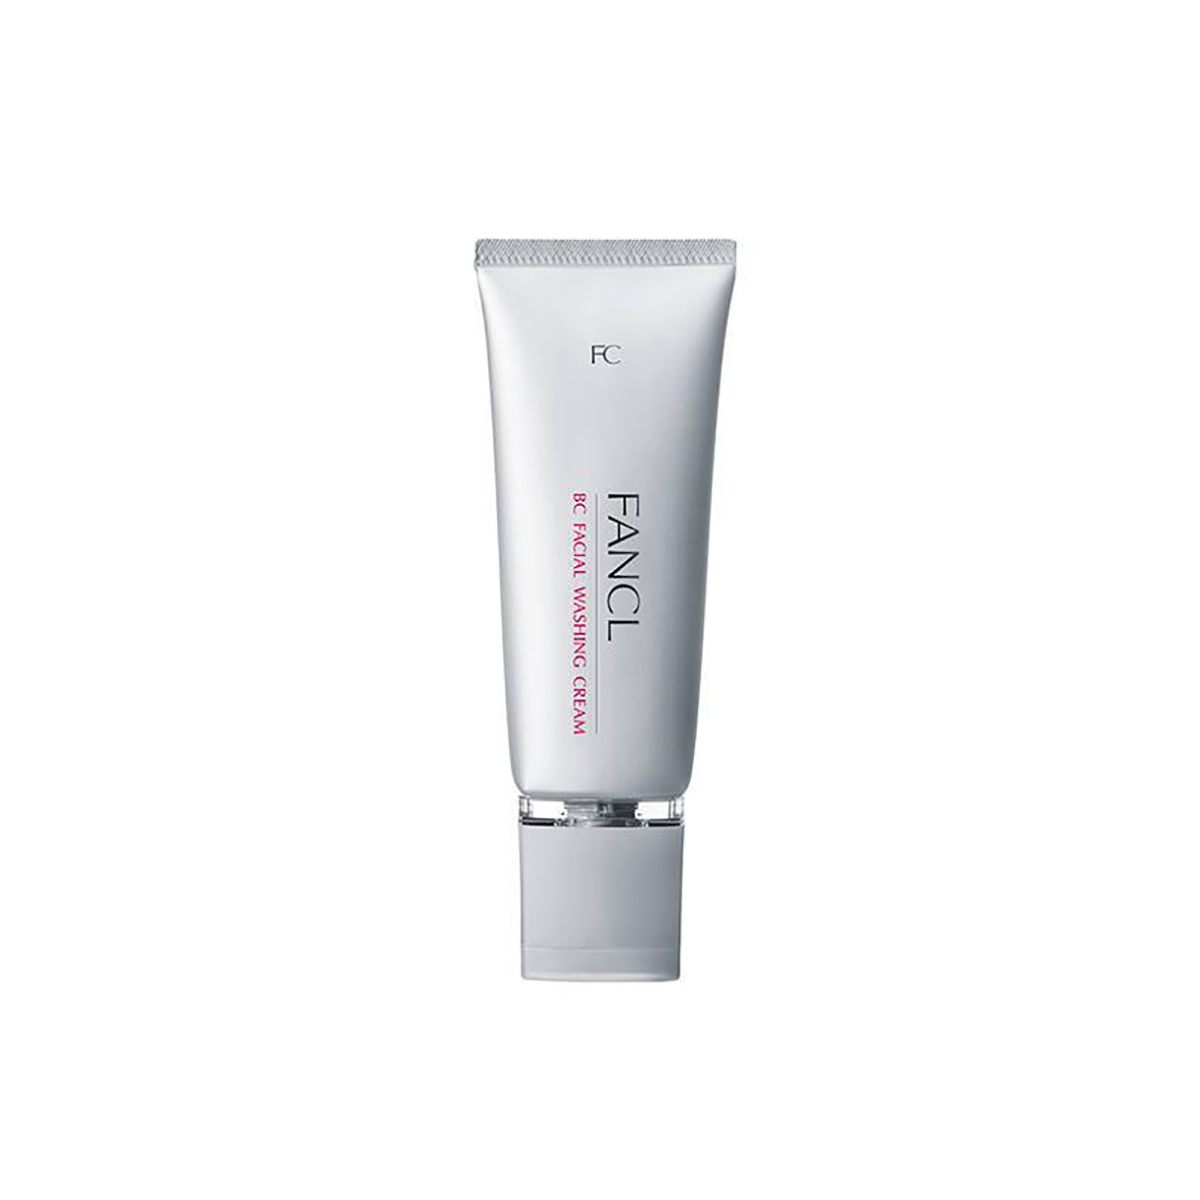 Buy FANCL BC Face Wash Cream 90g [Ship from SG / 100% Authentic] Singapore